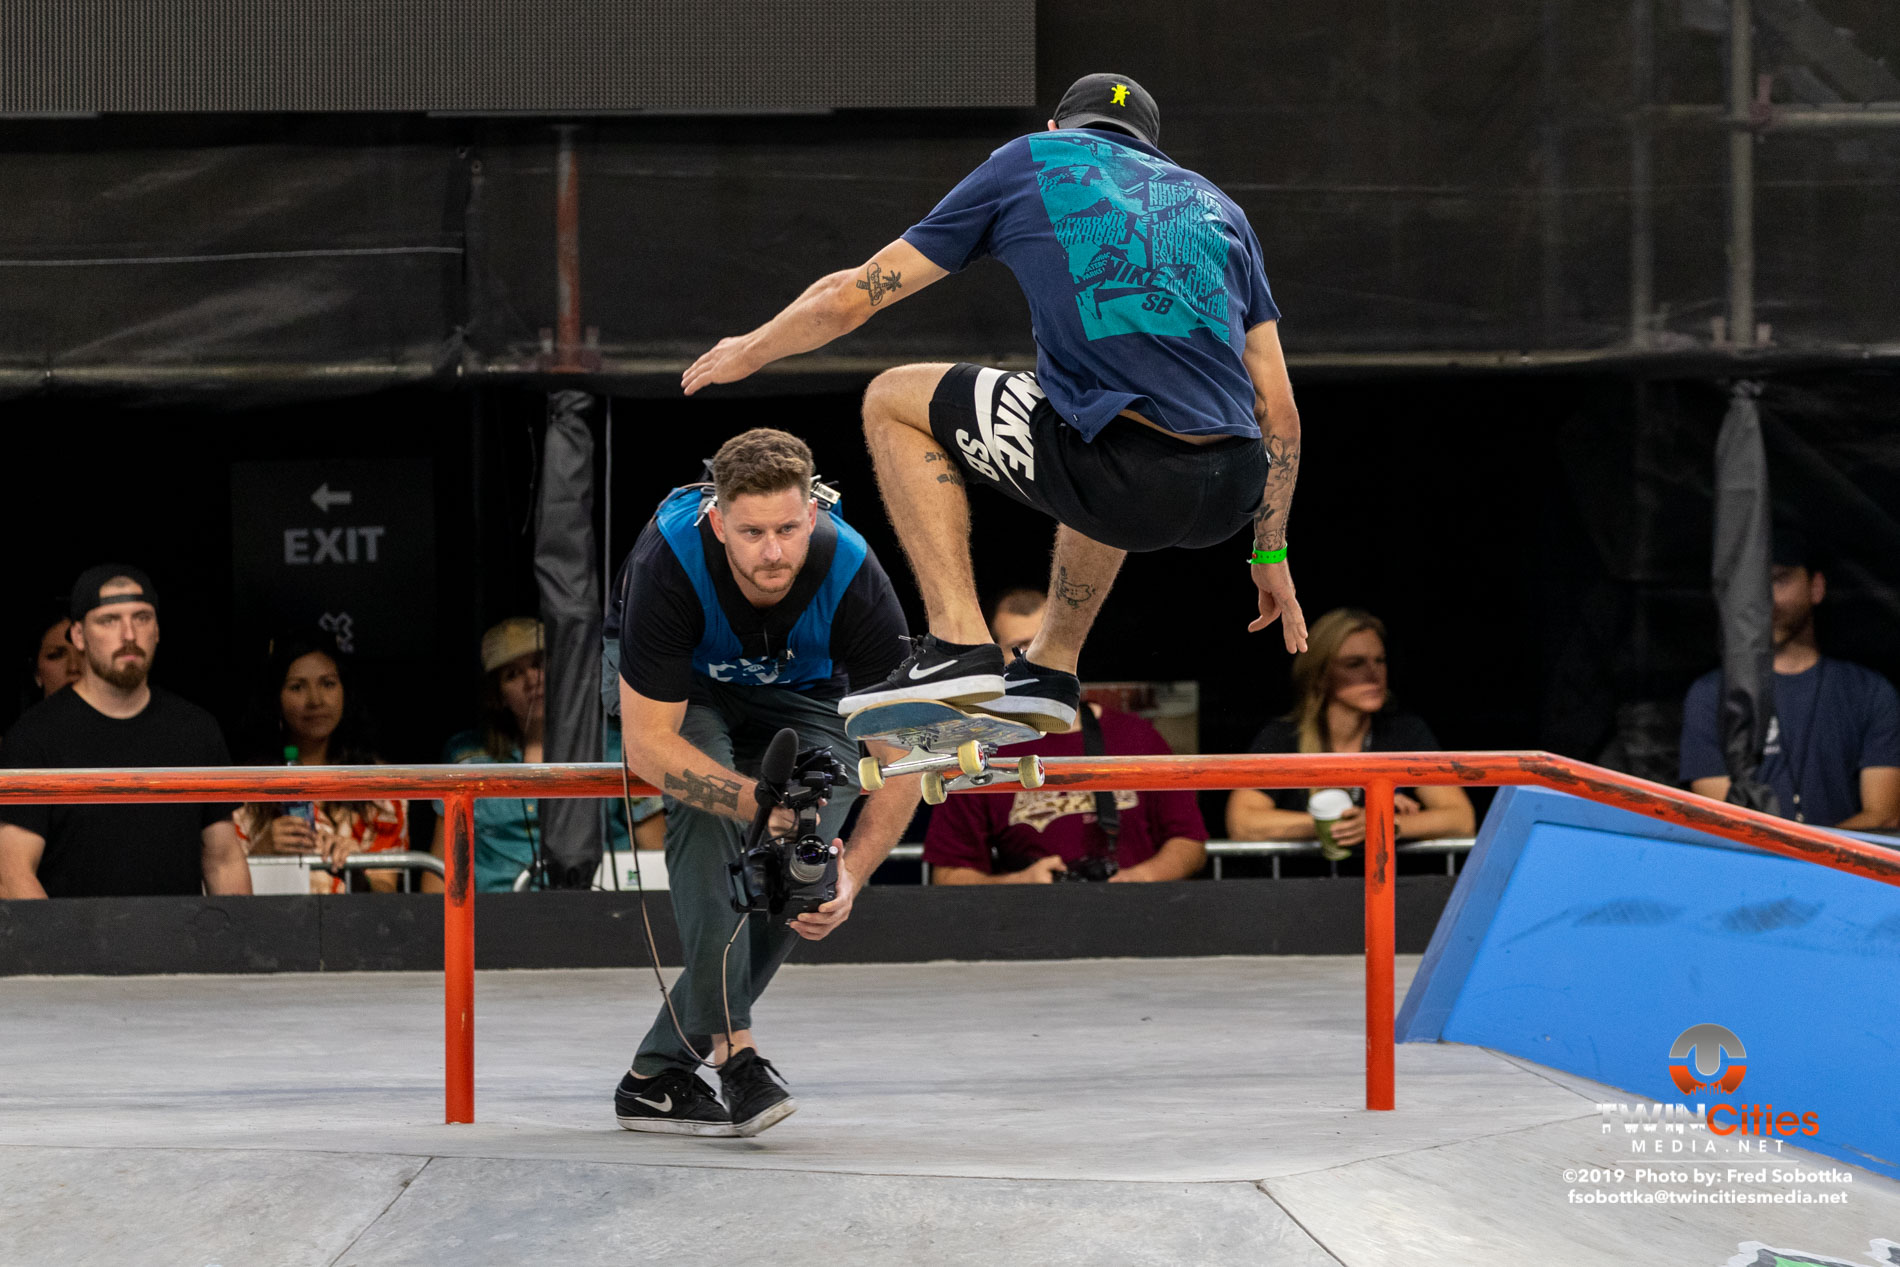 Monster-Energy-Mens-Skateboard-Street-Elimination-11